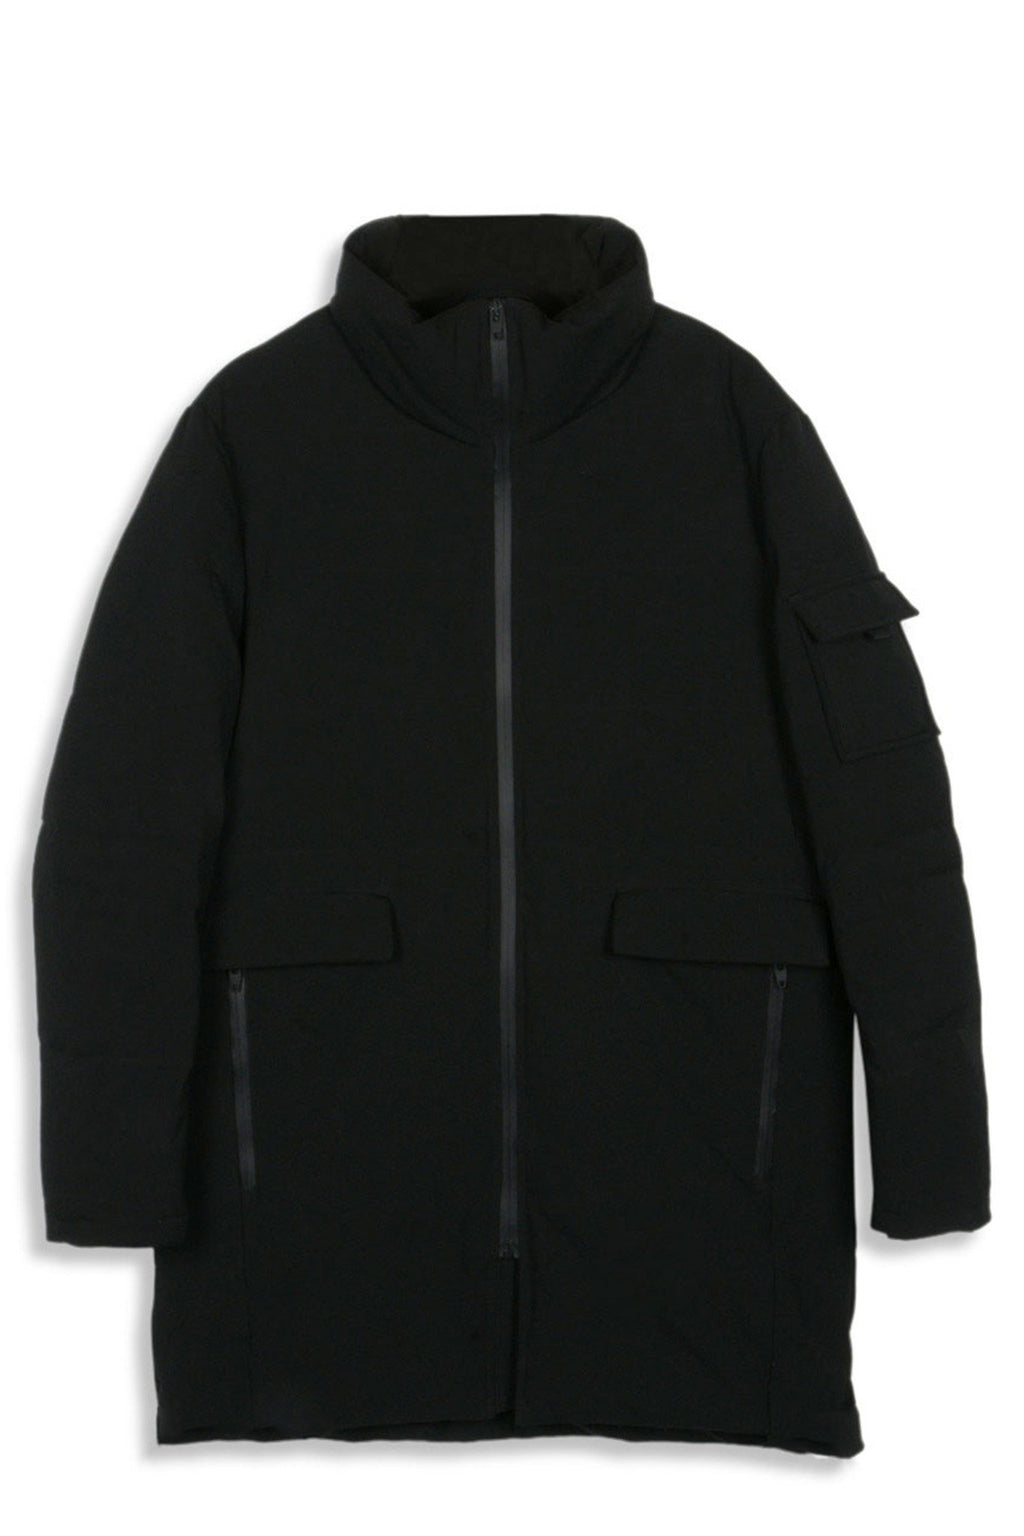 Cheez Down Jacket - Black